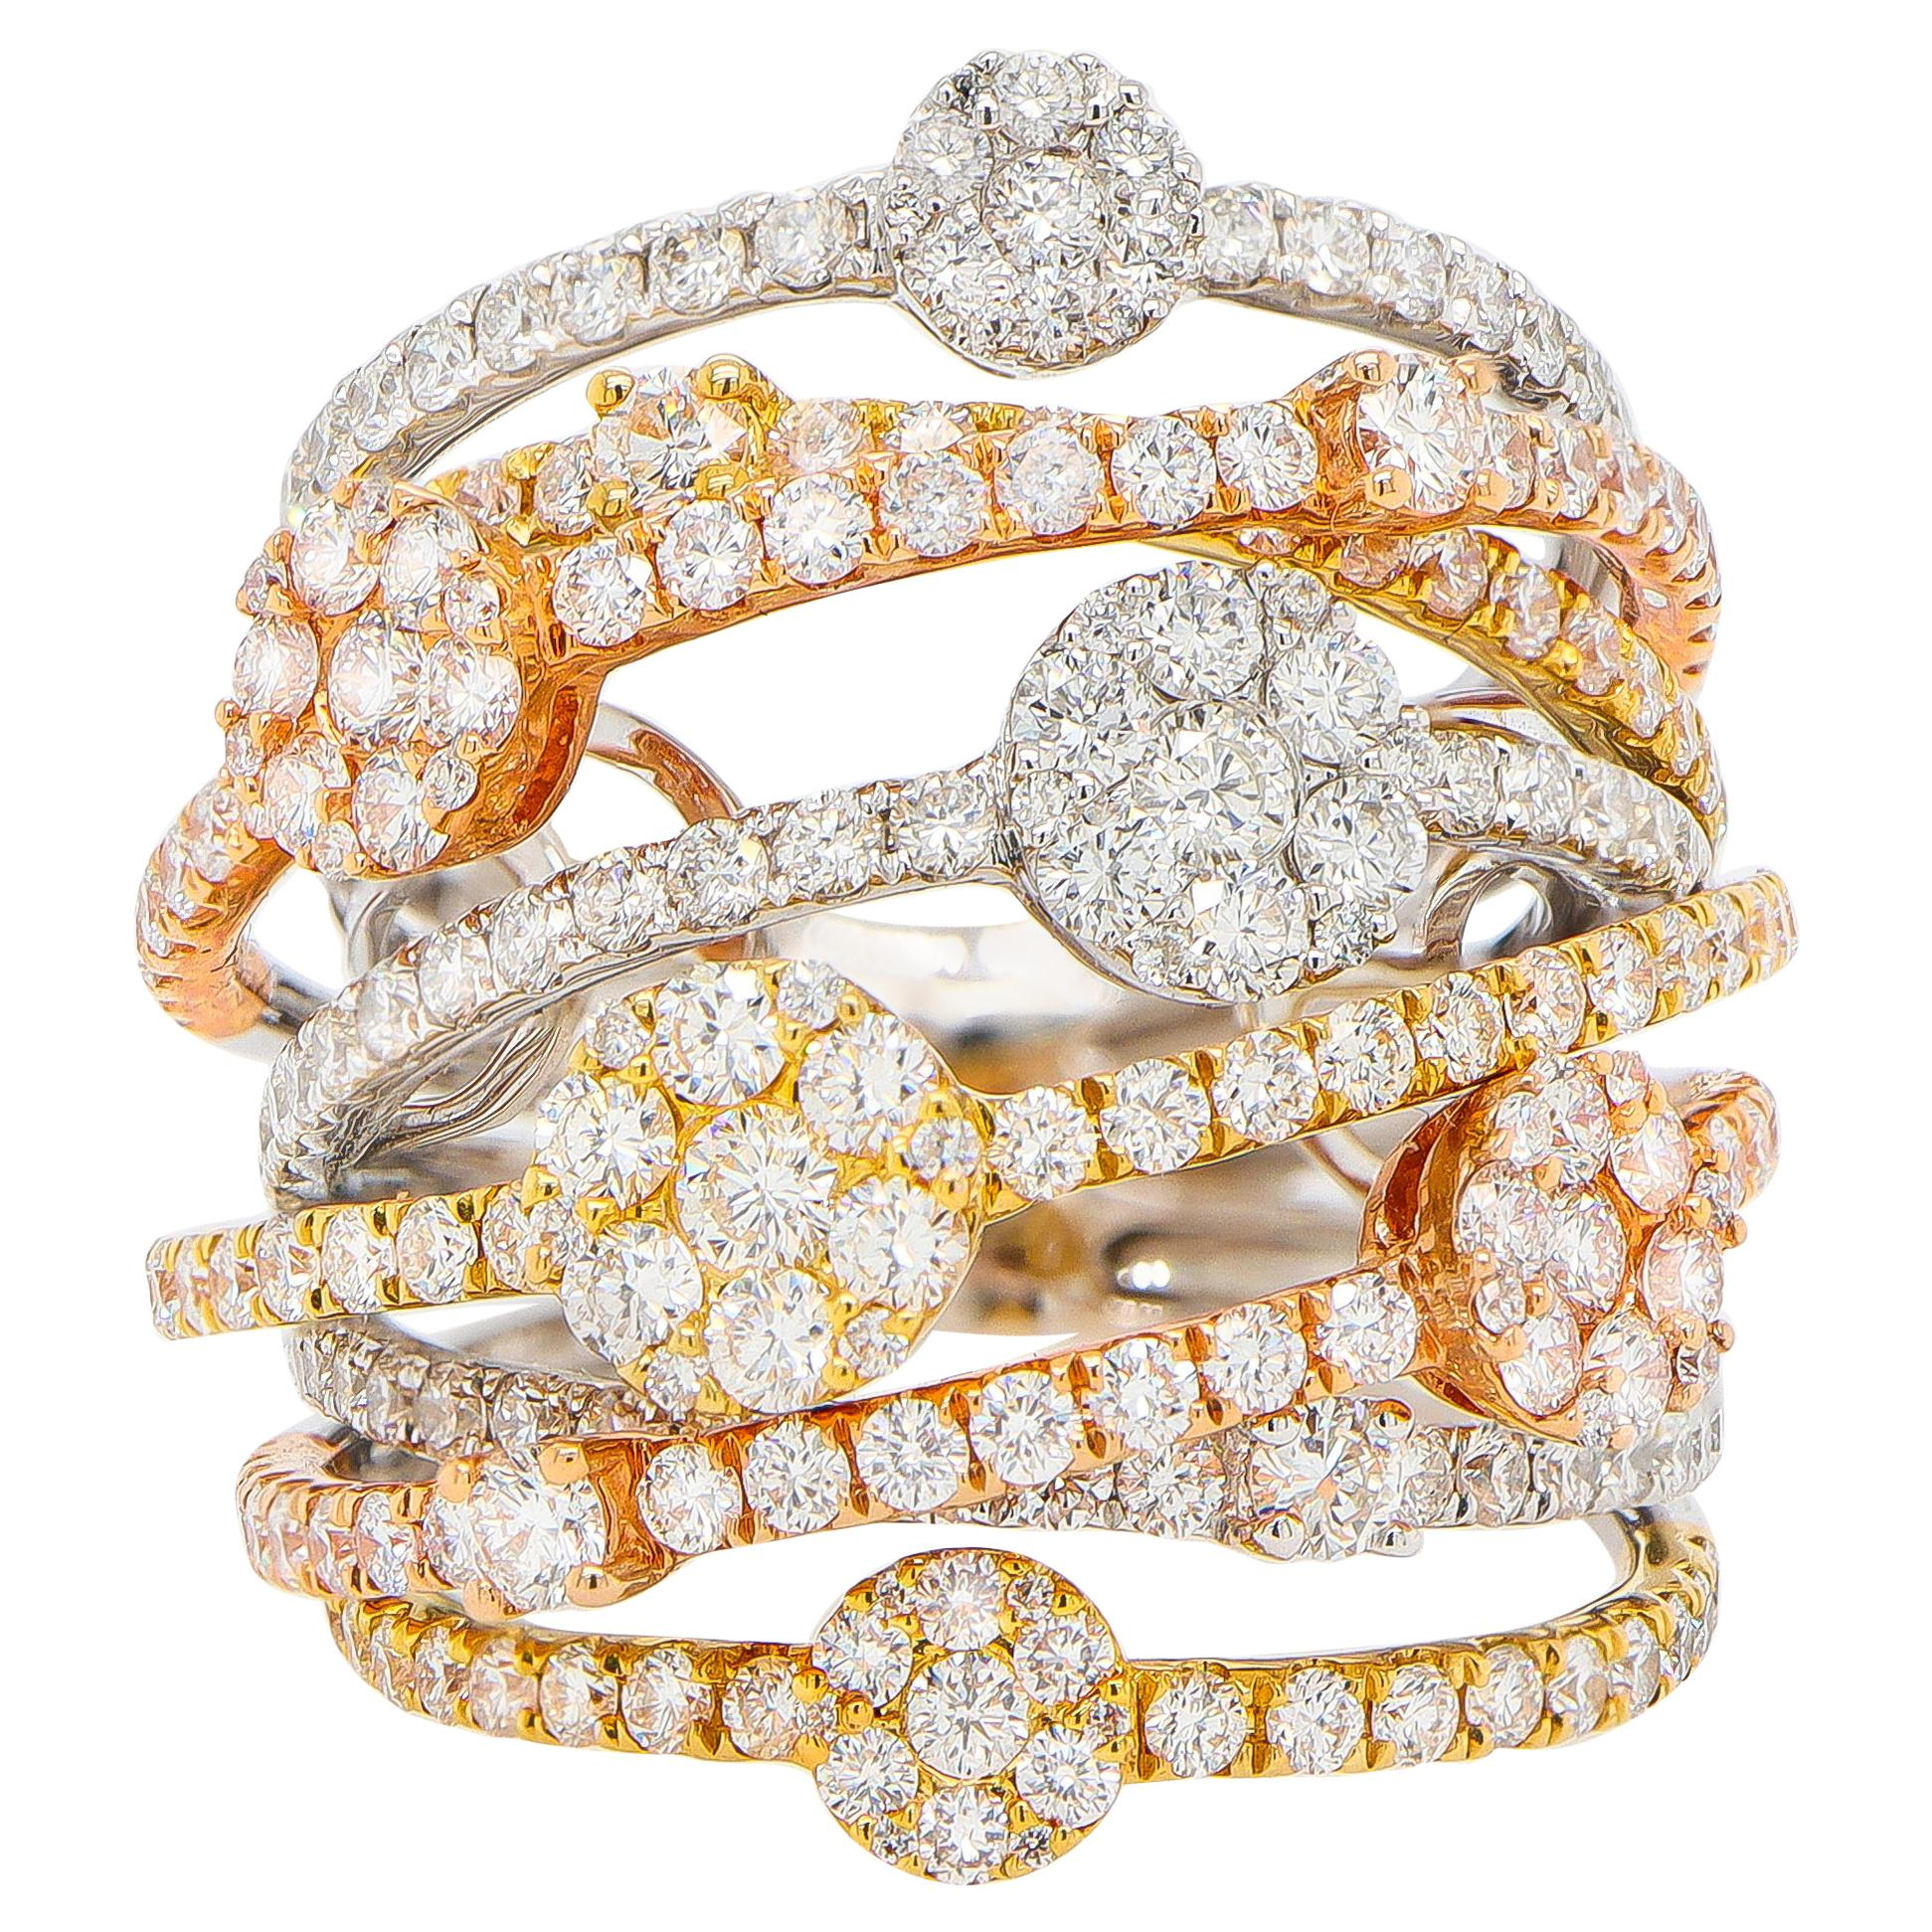 Diamond Cocktail Ring Made with 241 Diamonds 3.26 Carats 18K Gold